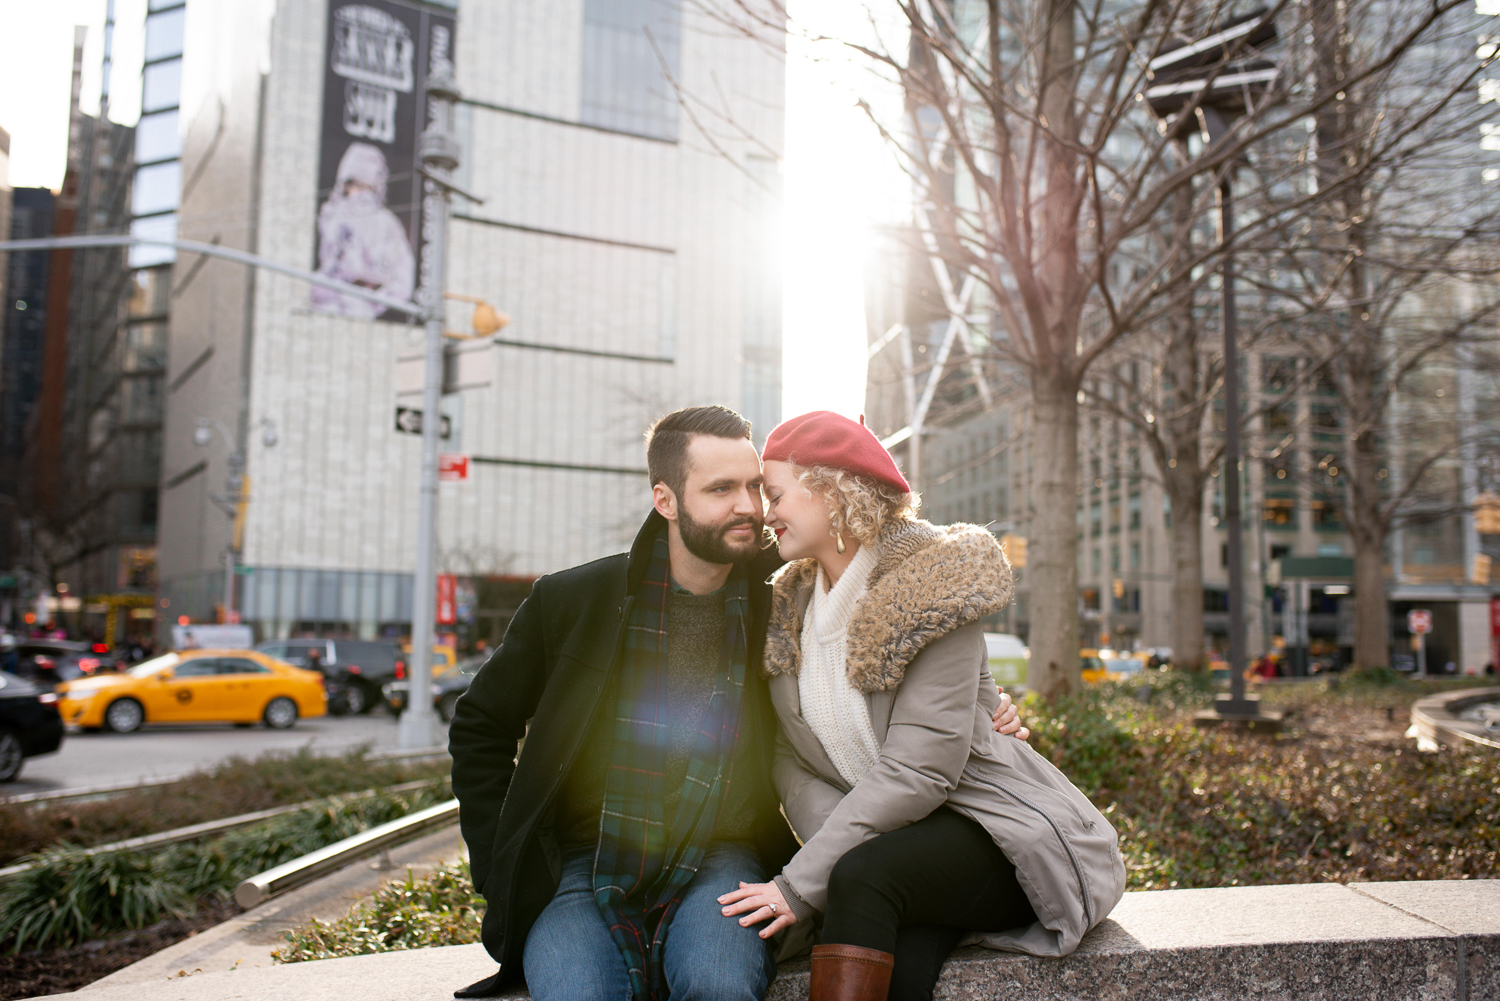 Amanda Jane Cooper, recently seen as Glinda in Wicked, gets engaged in New York City. Photo by ALN IMAGES